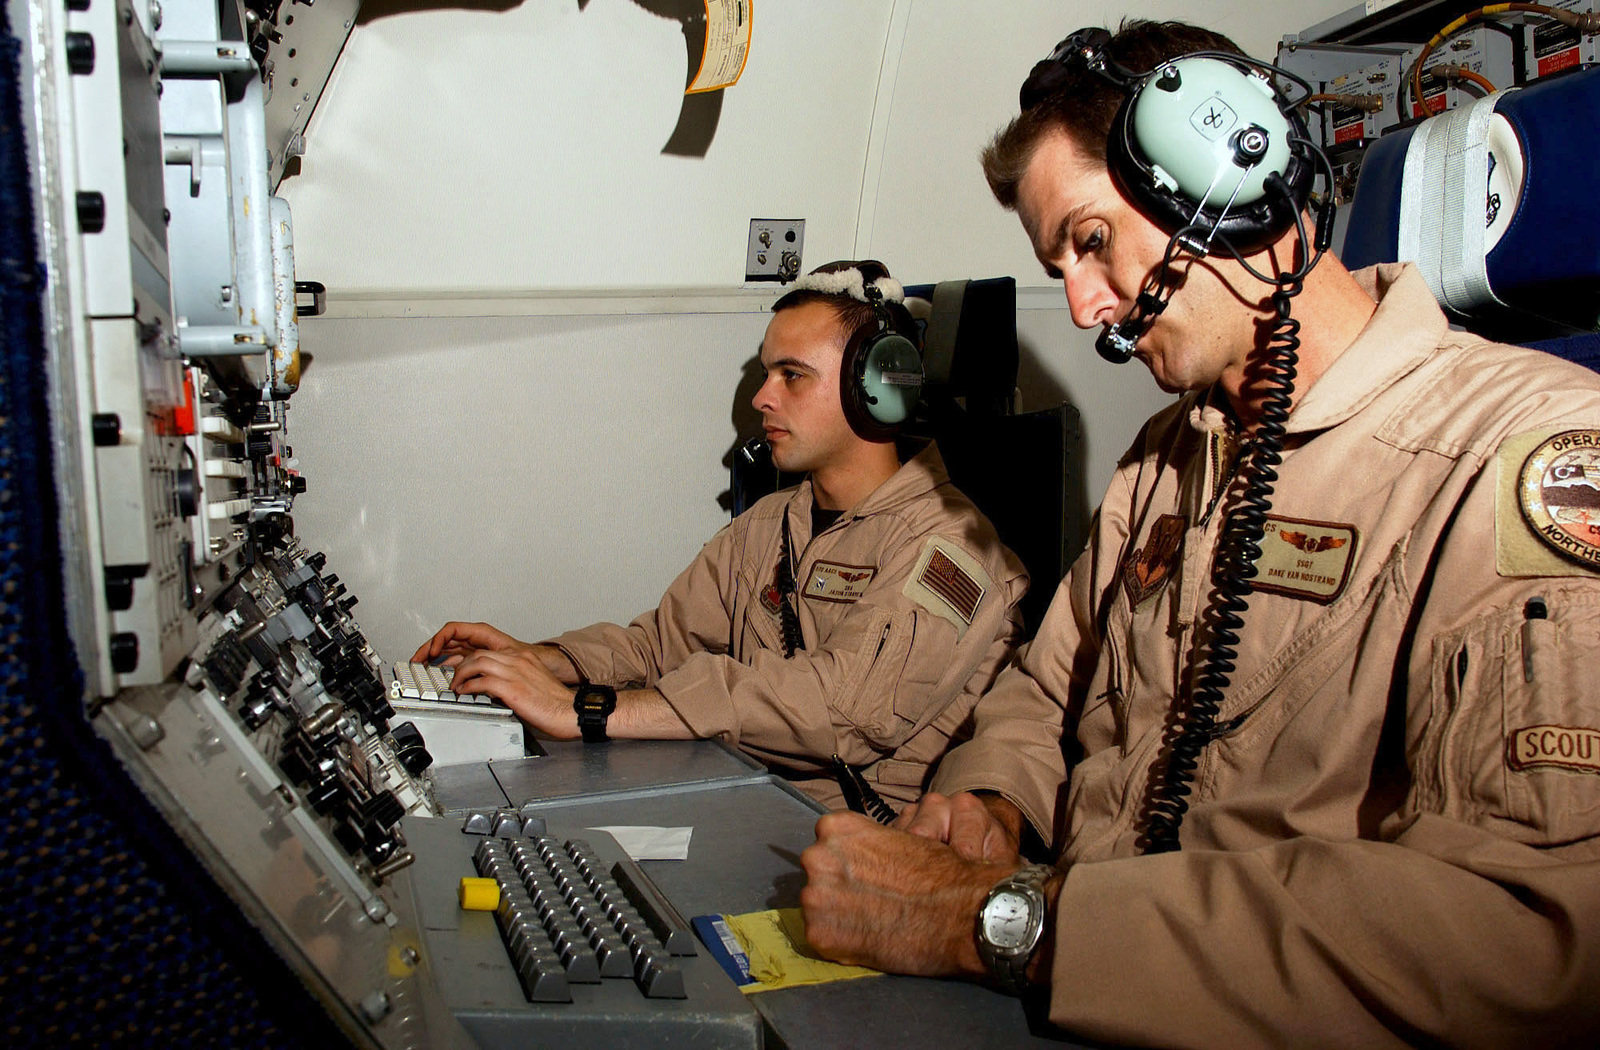 US Air Force (USAF) STAFF Sergeant (SSGT) Dave Van Nostrand (foreground) and USAF SENIOR AIRMAN (SRA) Jason Strayer, both assigned to the 970th Expeditionary Air Borne Control Squadron, perform pre-flight inspection on the communications system aboard a USAF E-3A Sentry Airborne Warning and Control System (AWACS) aircraft, while deployed at Incirlik Air Base (AB), Turkey